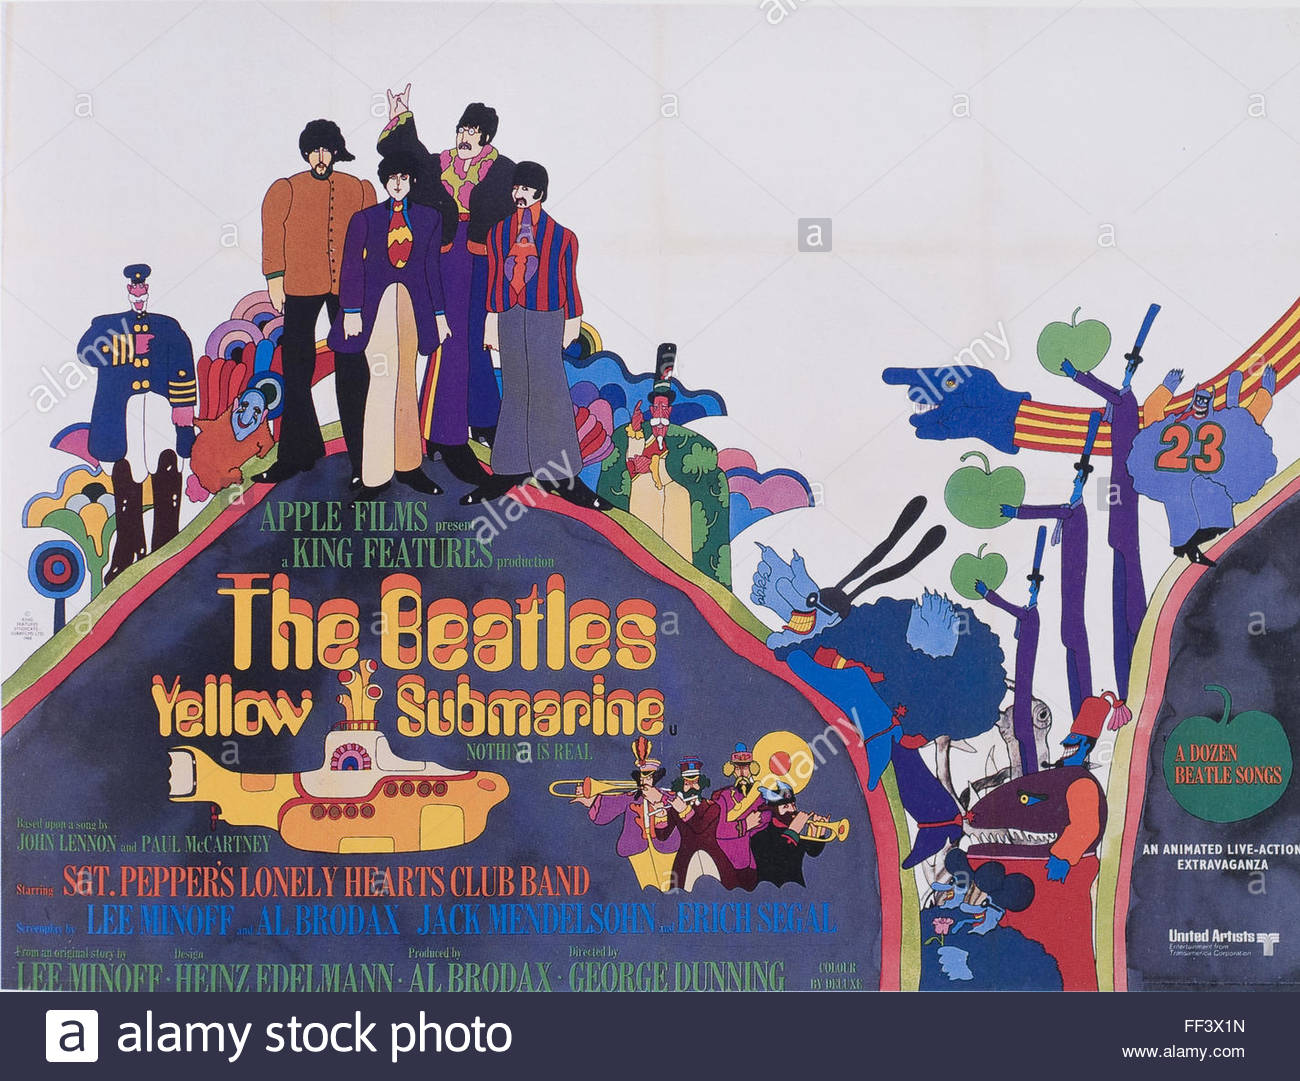 the beatles yellow submarine movie poster stock photo